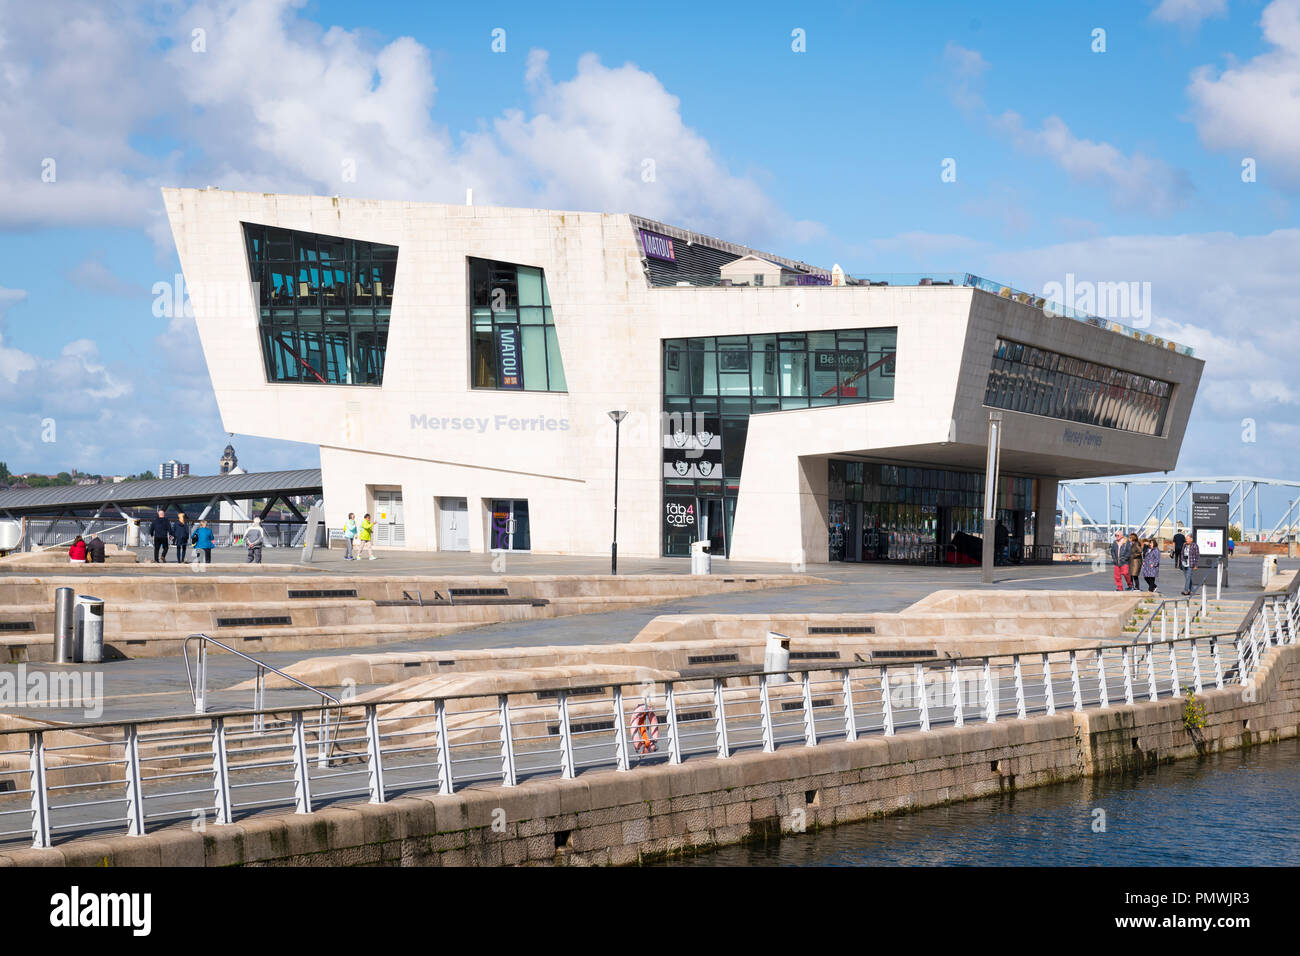 Liverpool Merseyside Pier Head iconic modern contemporary purpose built Mersey Ferries Terminal building - Stock Image